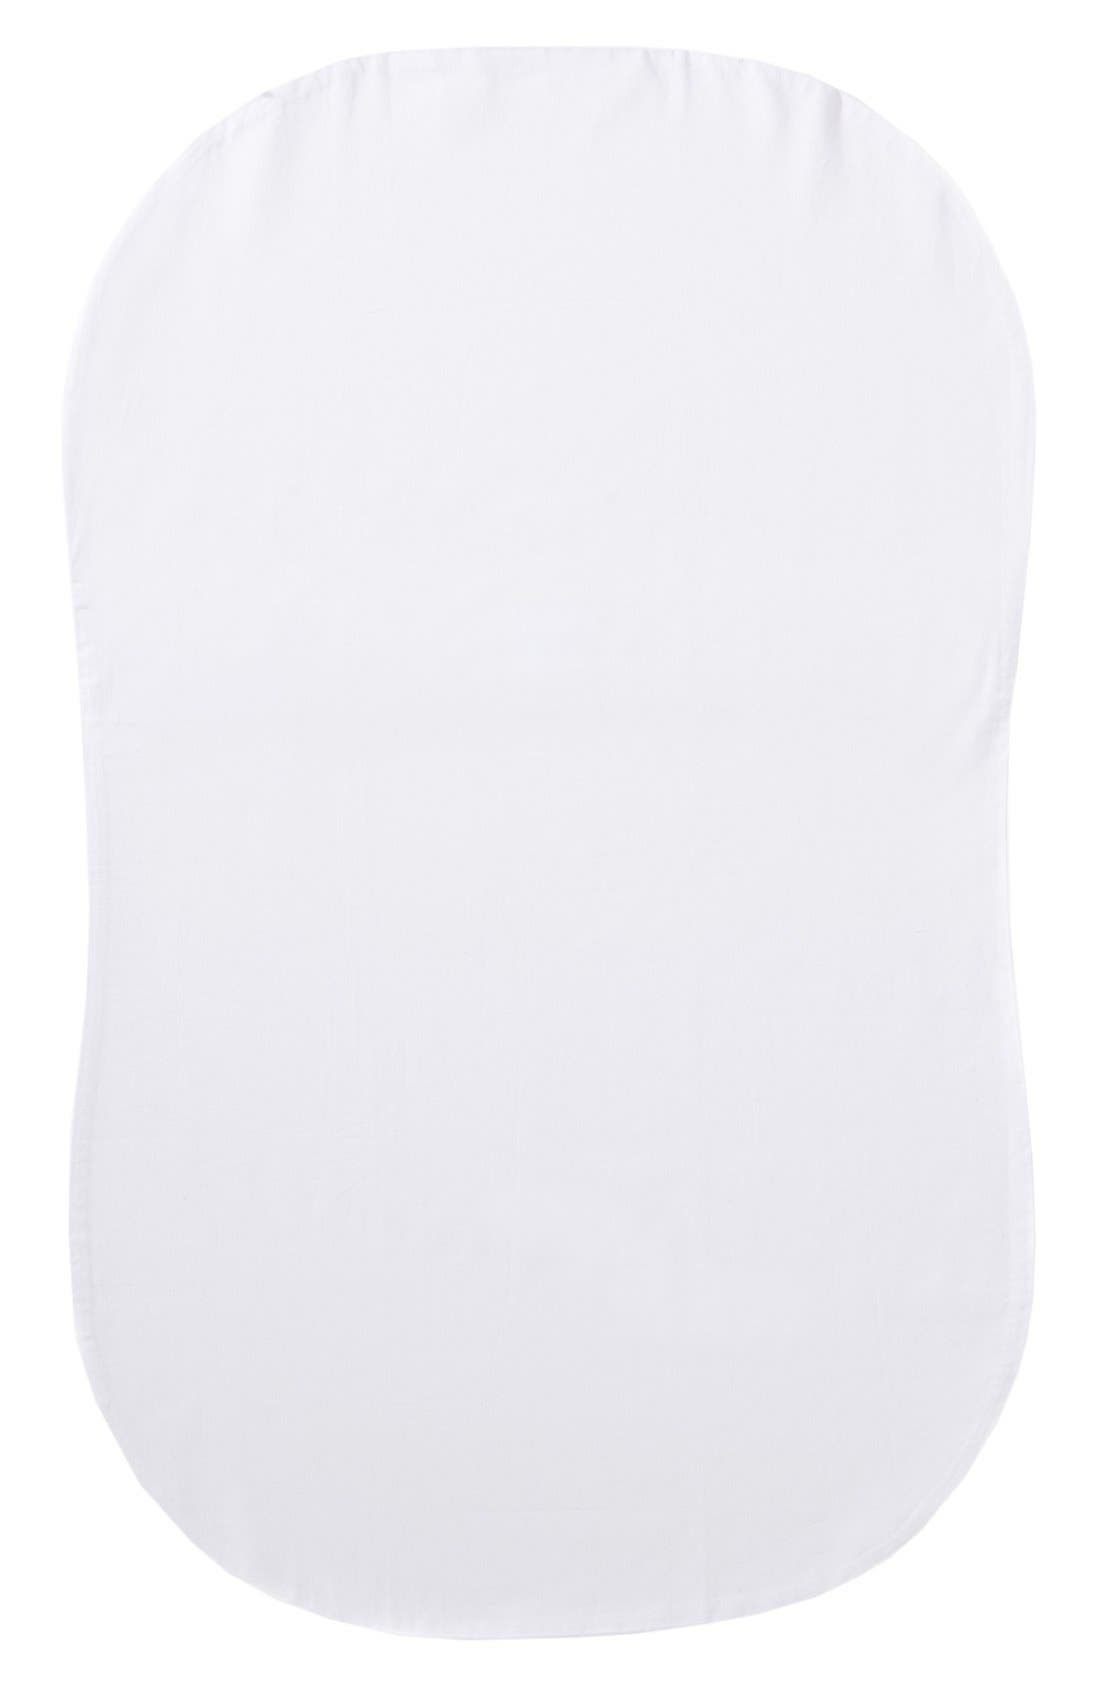 Main Image - Halo Innovations Organic Cotton Fitted Sheet for Halo Innovations Bassinest Swivel Sleeper